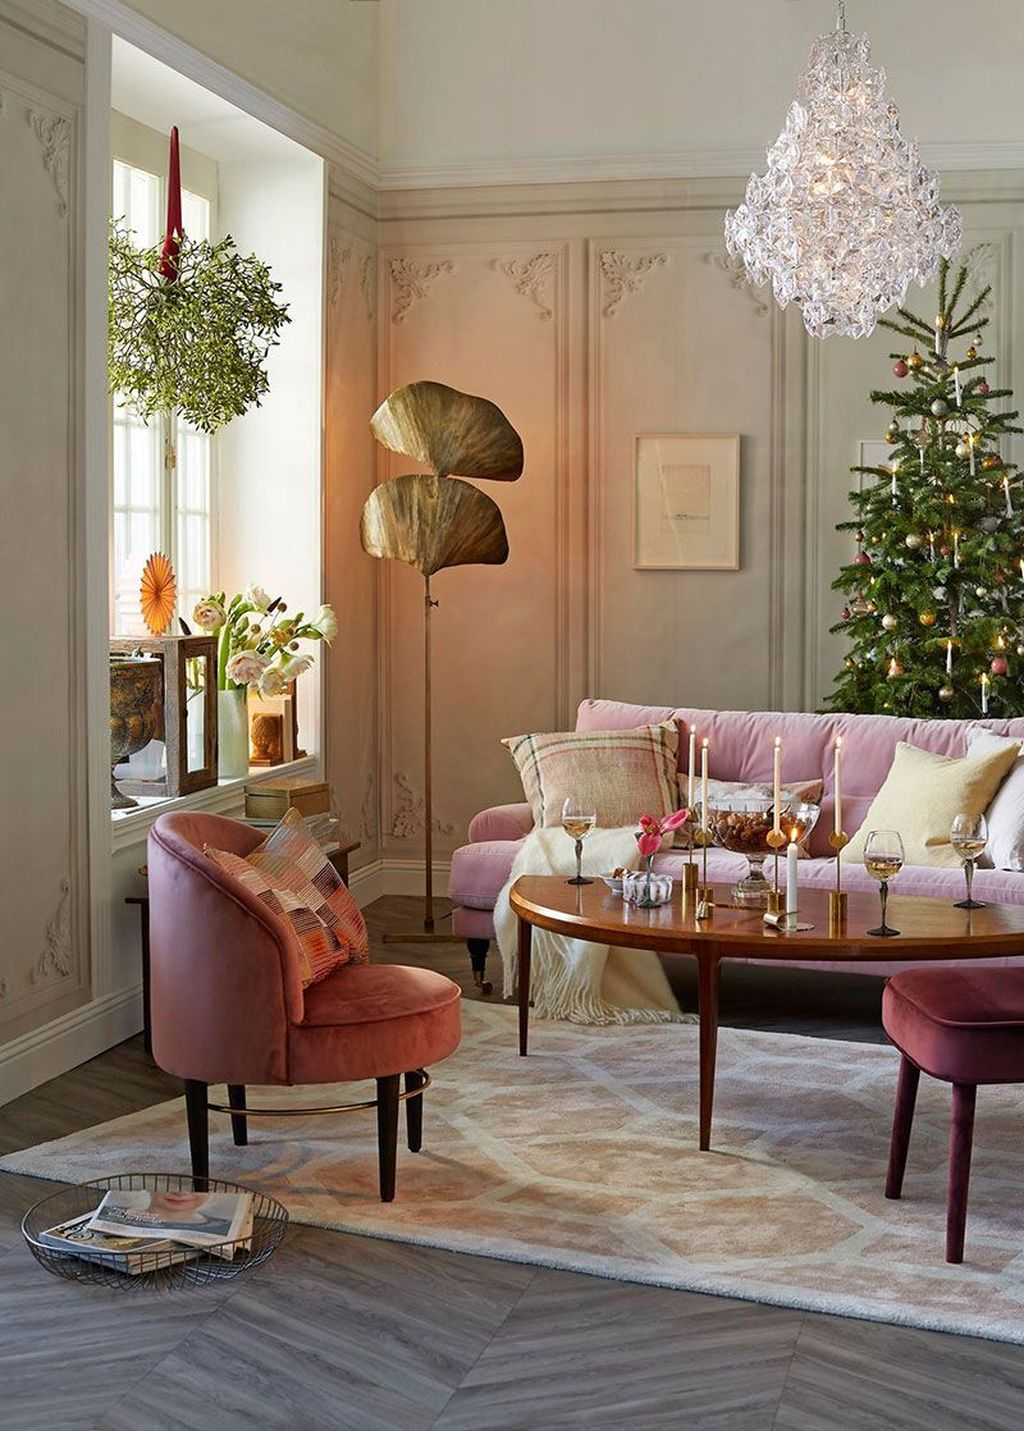 Beautiful Christmas Interior Design Ideas You Never Seen Before 09